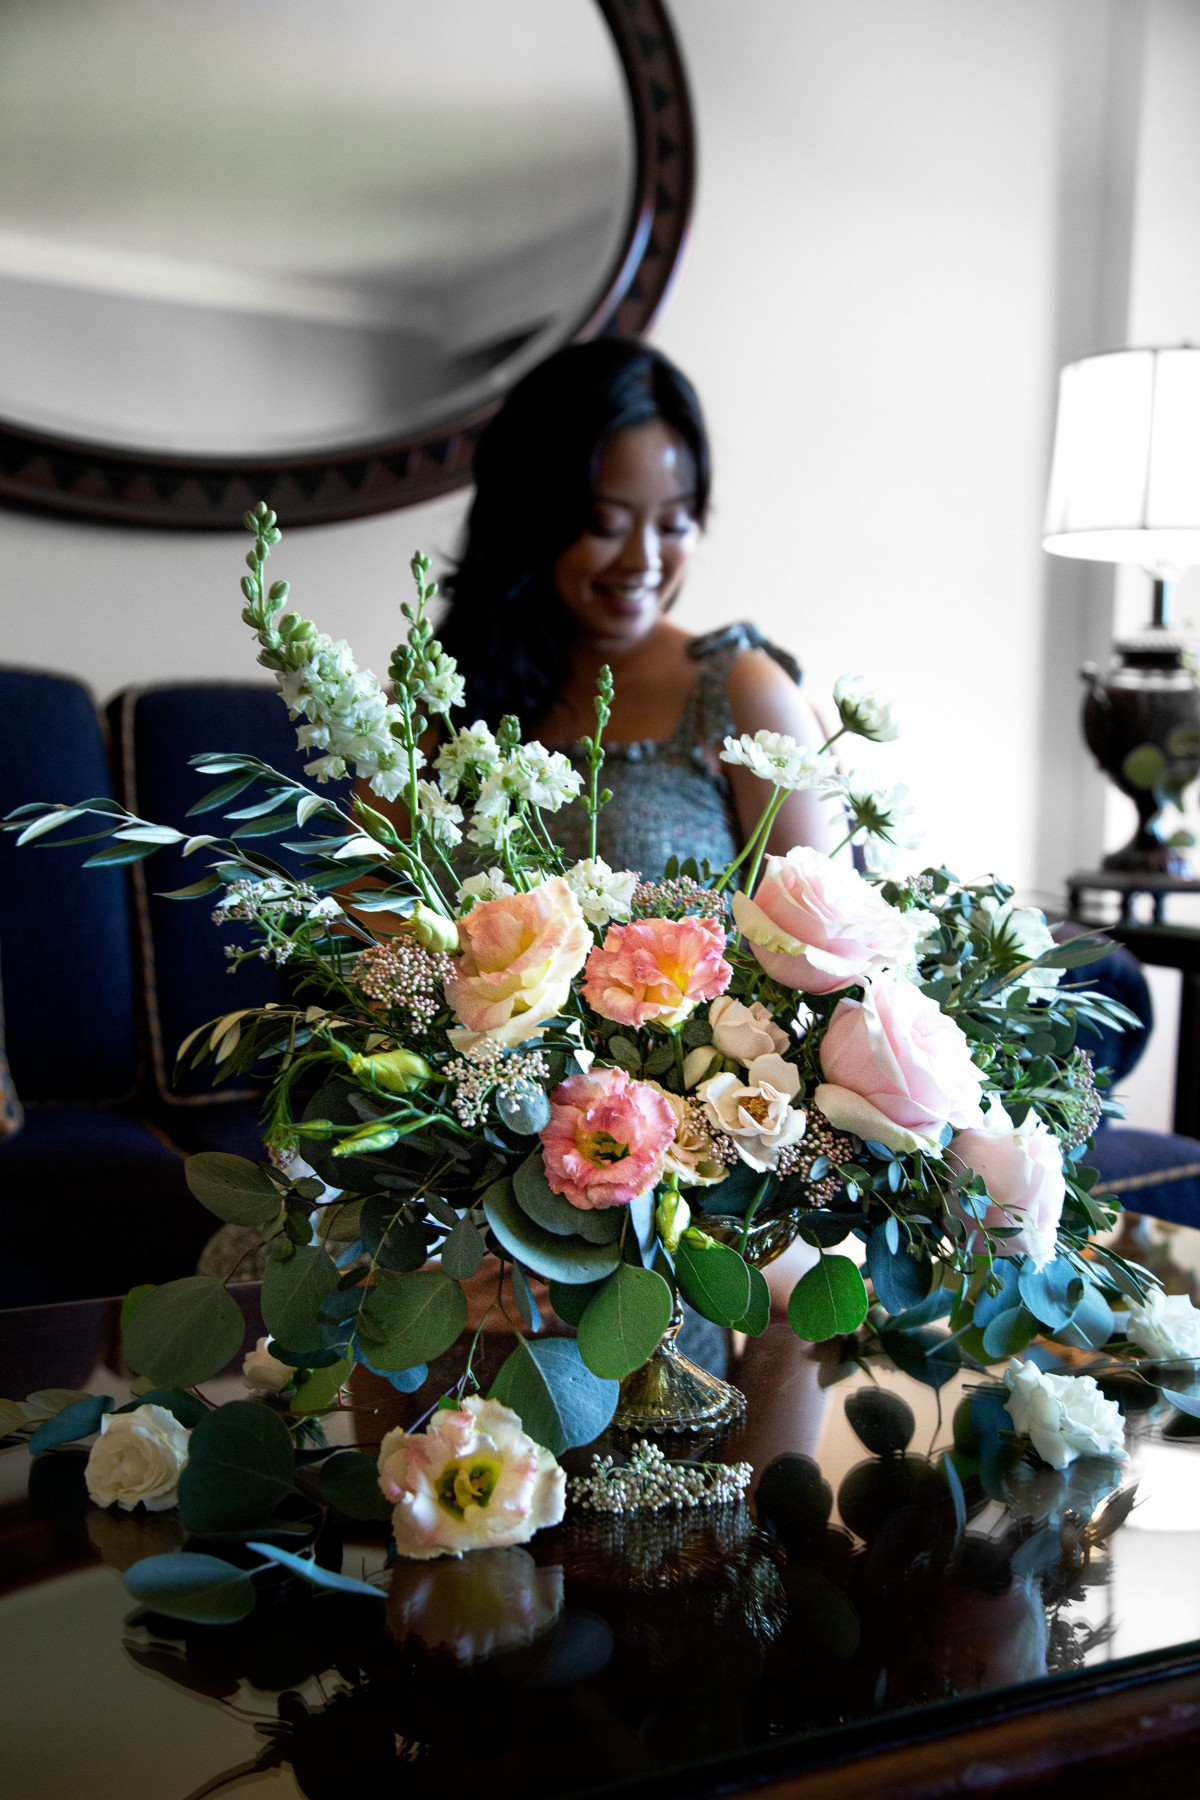 covid baby shower flowers by Alicia Serein Wu